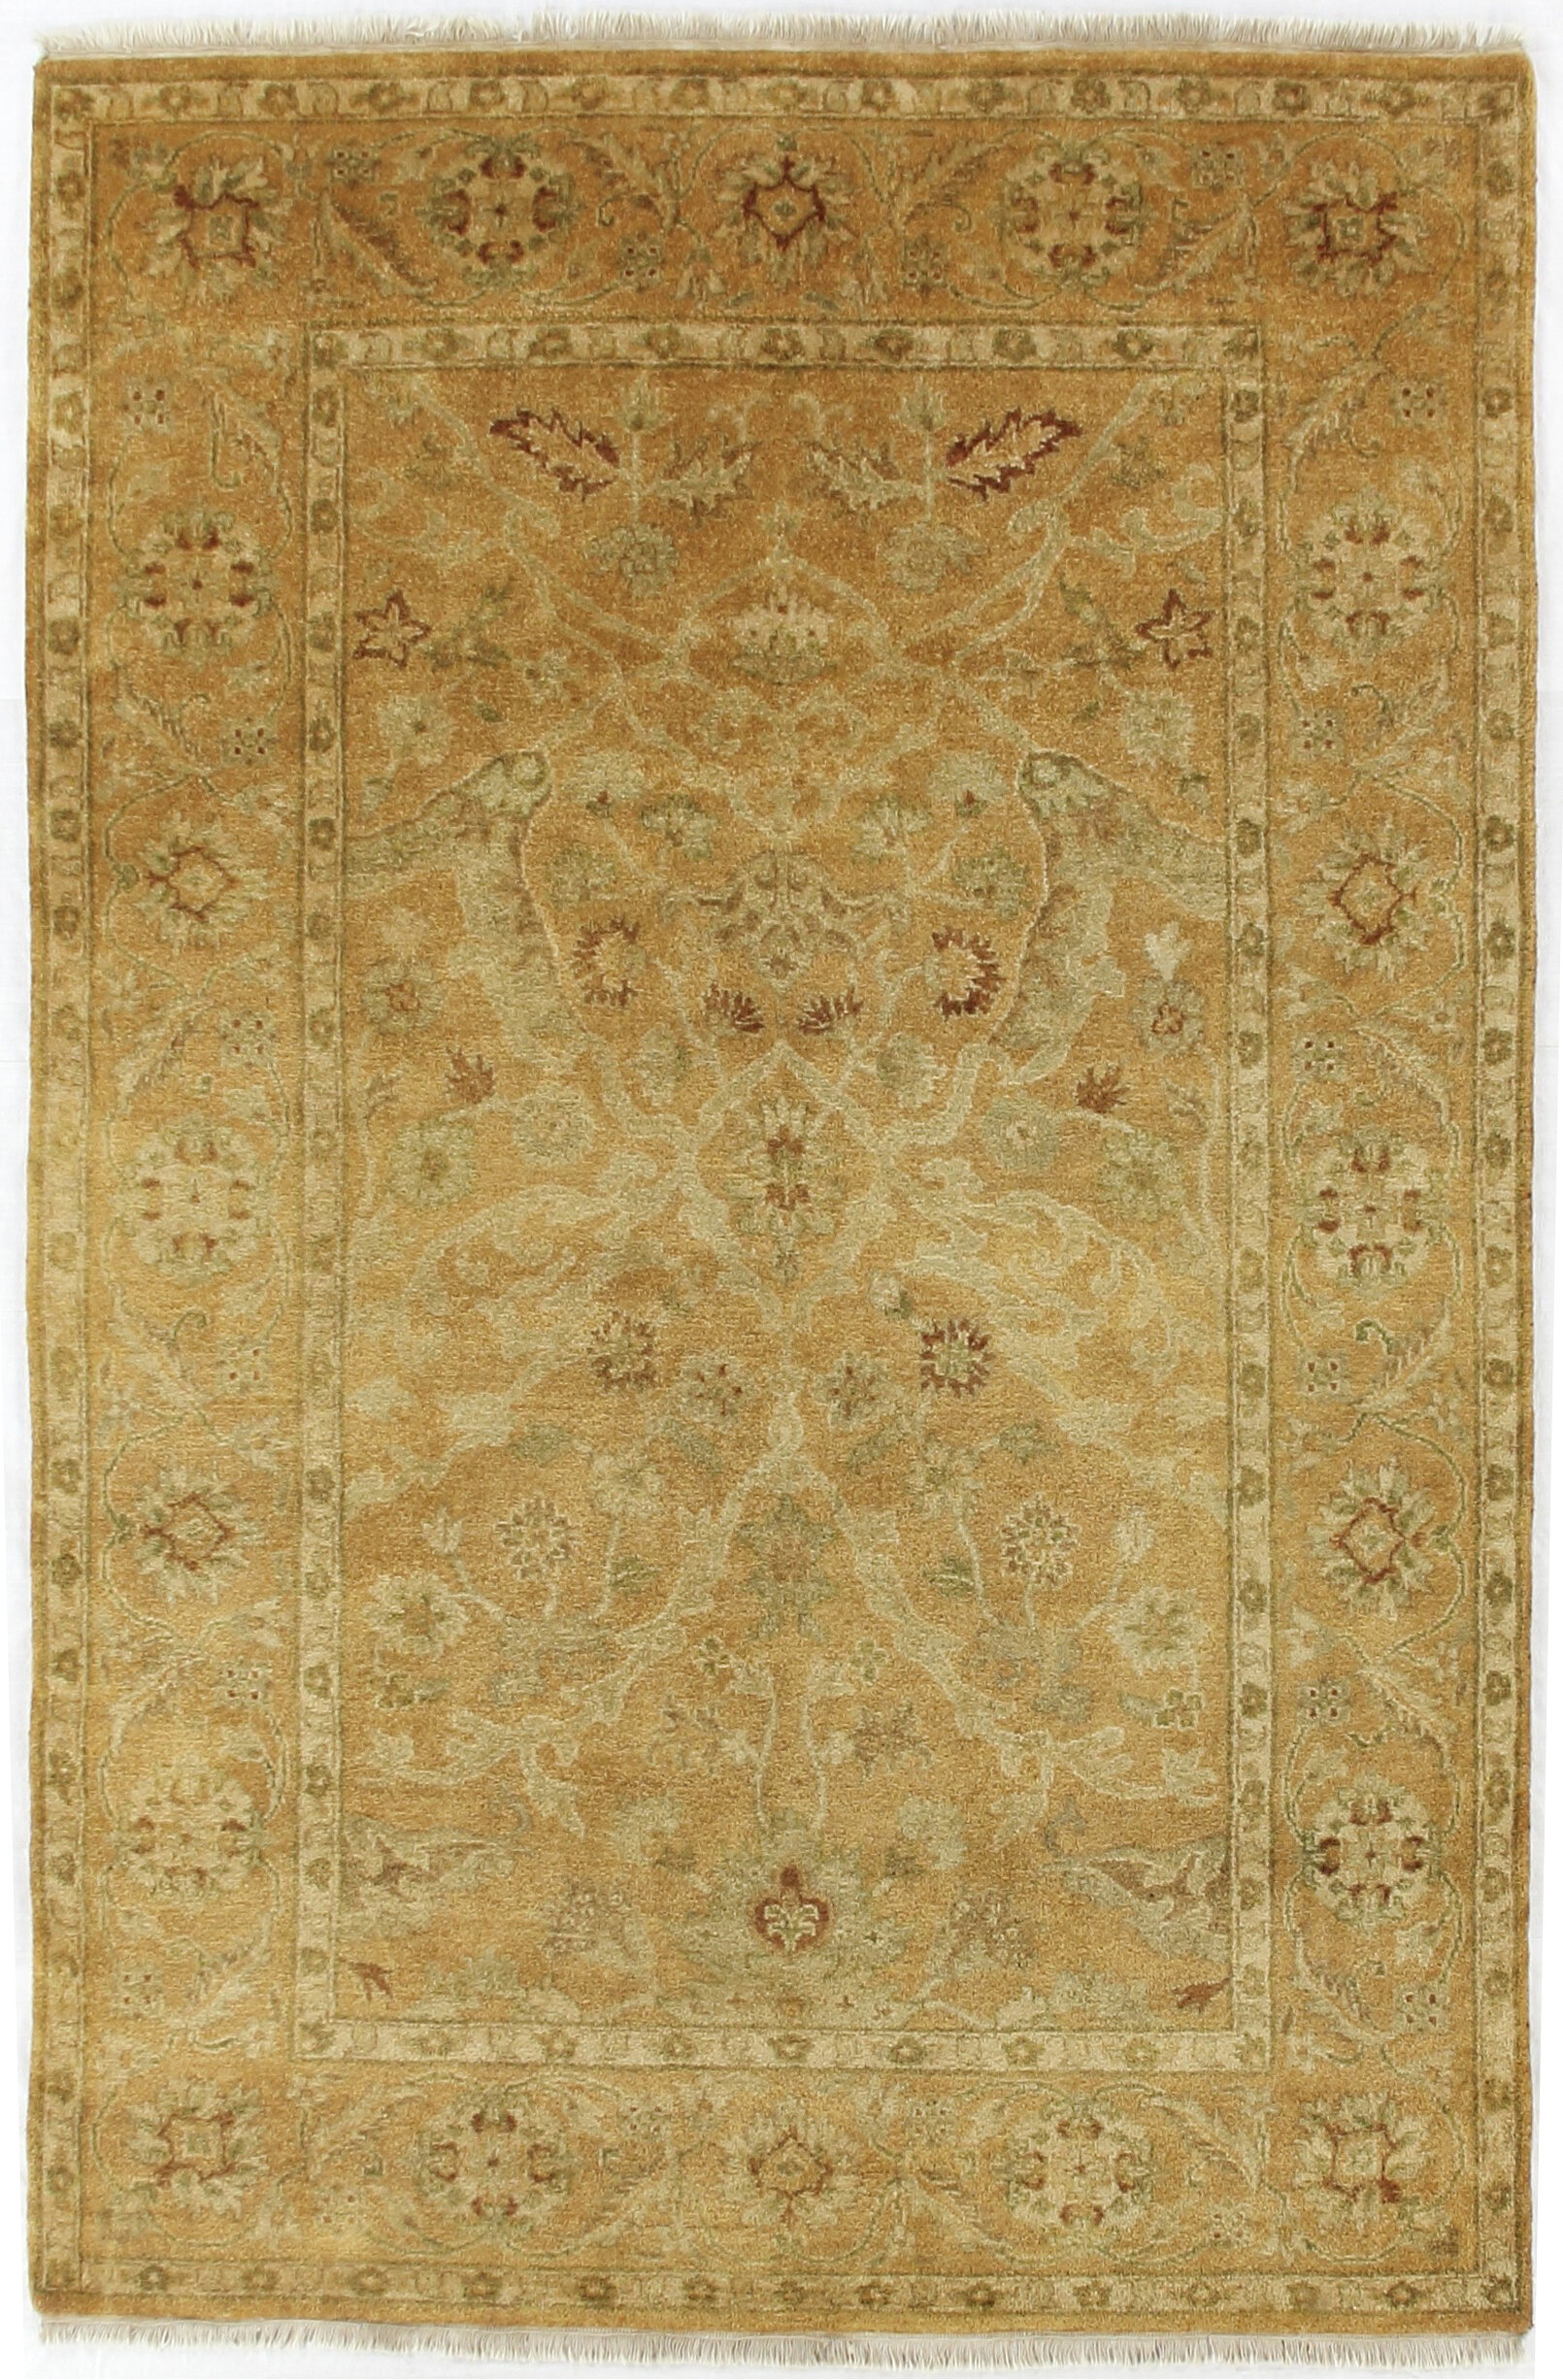 Exquisite Rugs Anatolian Oushak Oriental Hand Knotted Wool Gold Area Rug Perigold